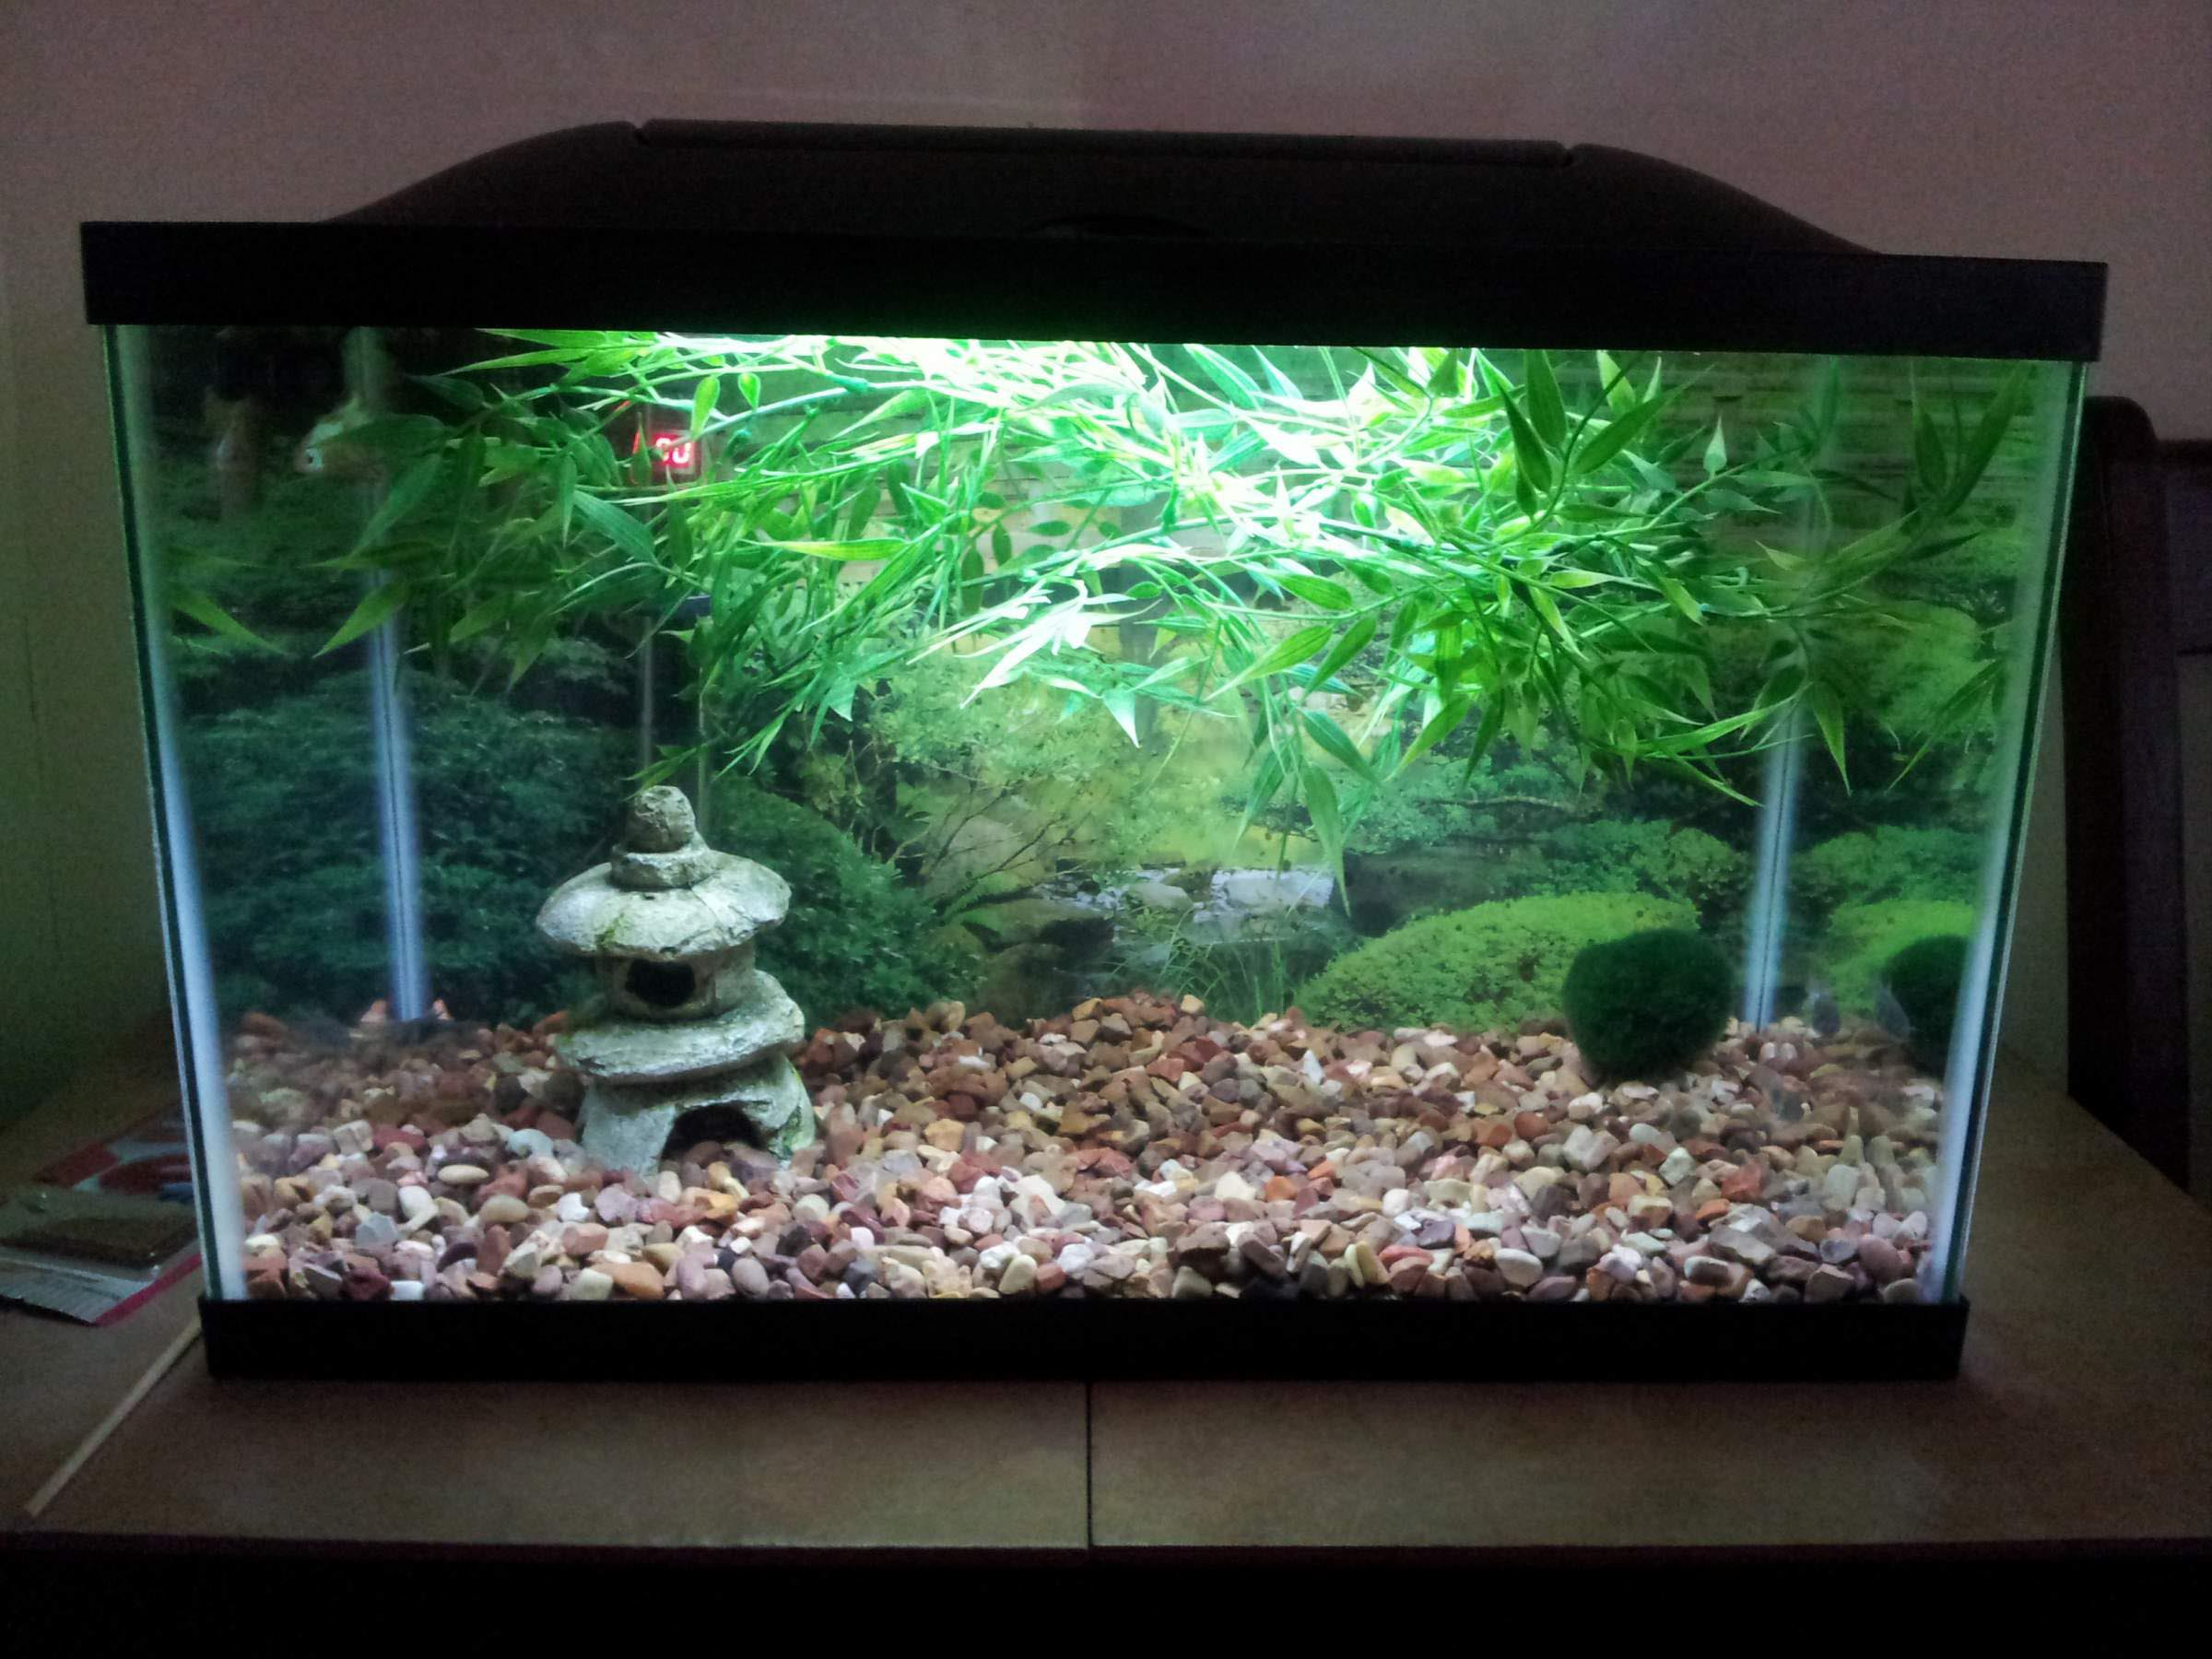 Fish aquarium decorations 28 images popular fish for Aquarium decoration